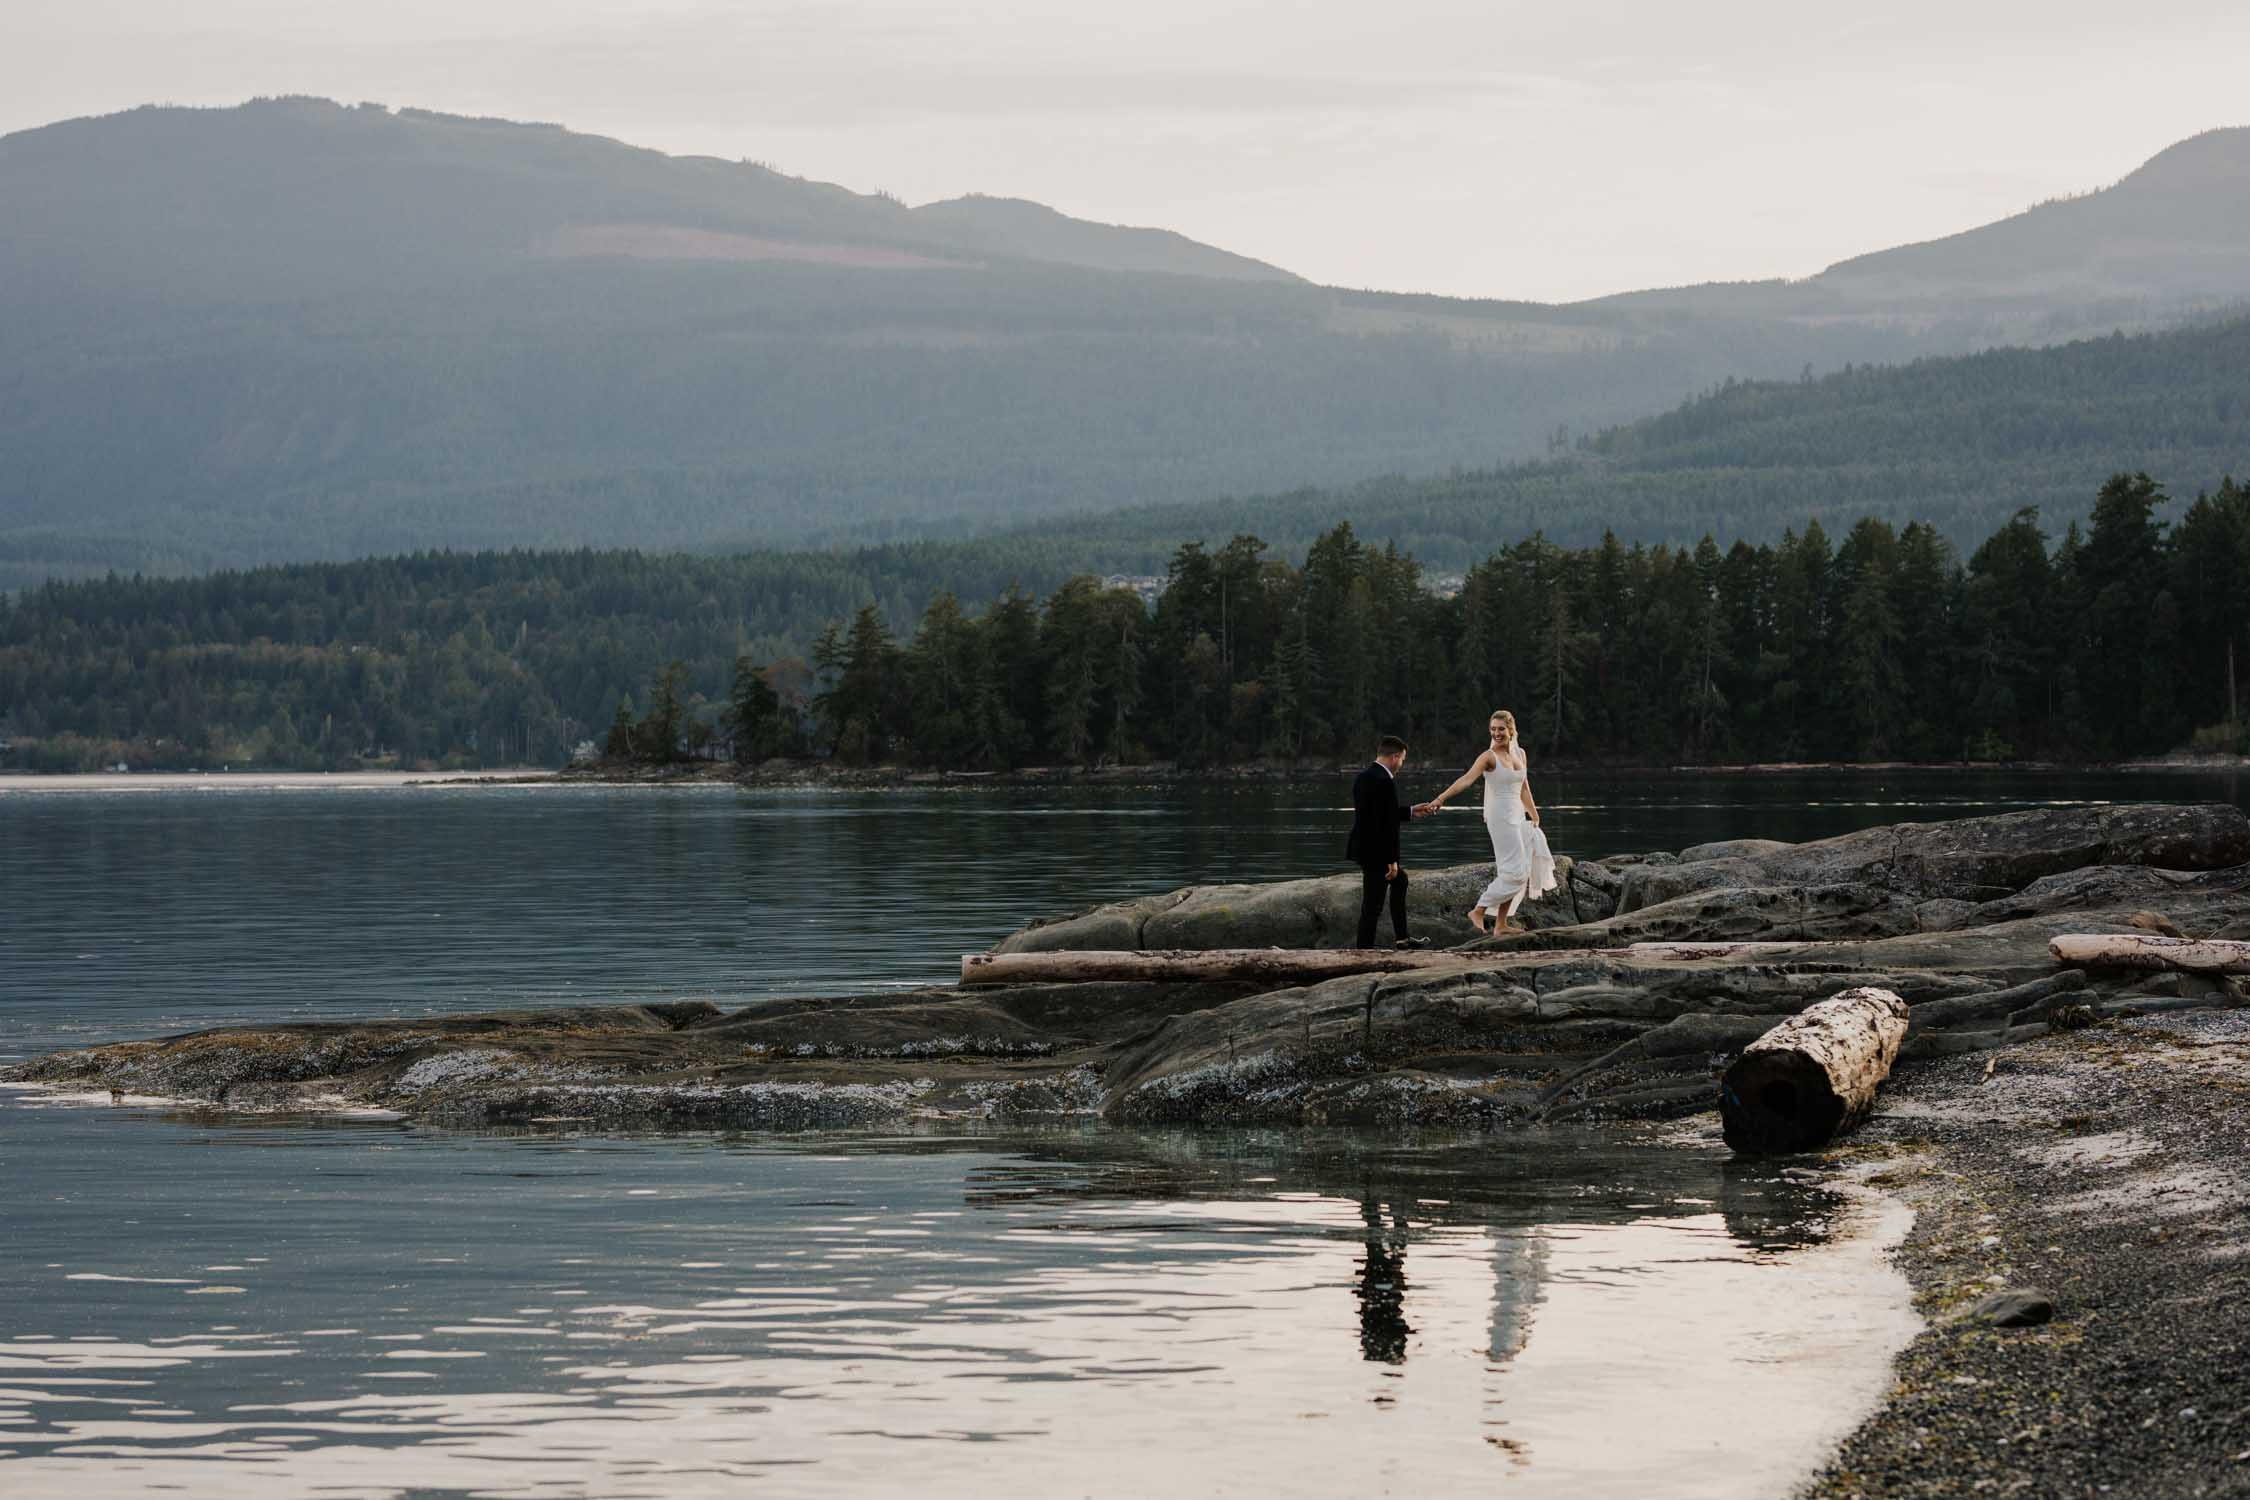 Artistic Vancouver Island Wedding Photographer captures intimate beach wedding on Vancouver Island at beautiful venue and location with sea and mountain views